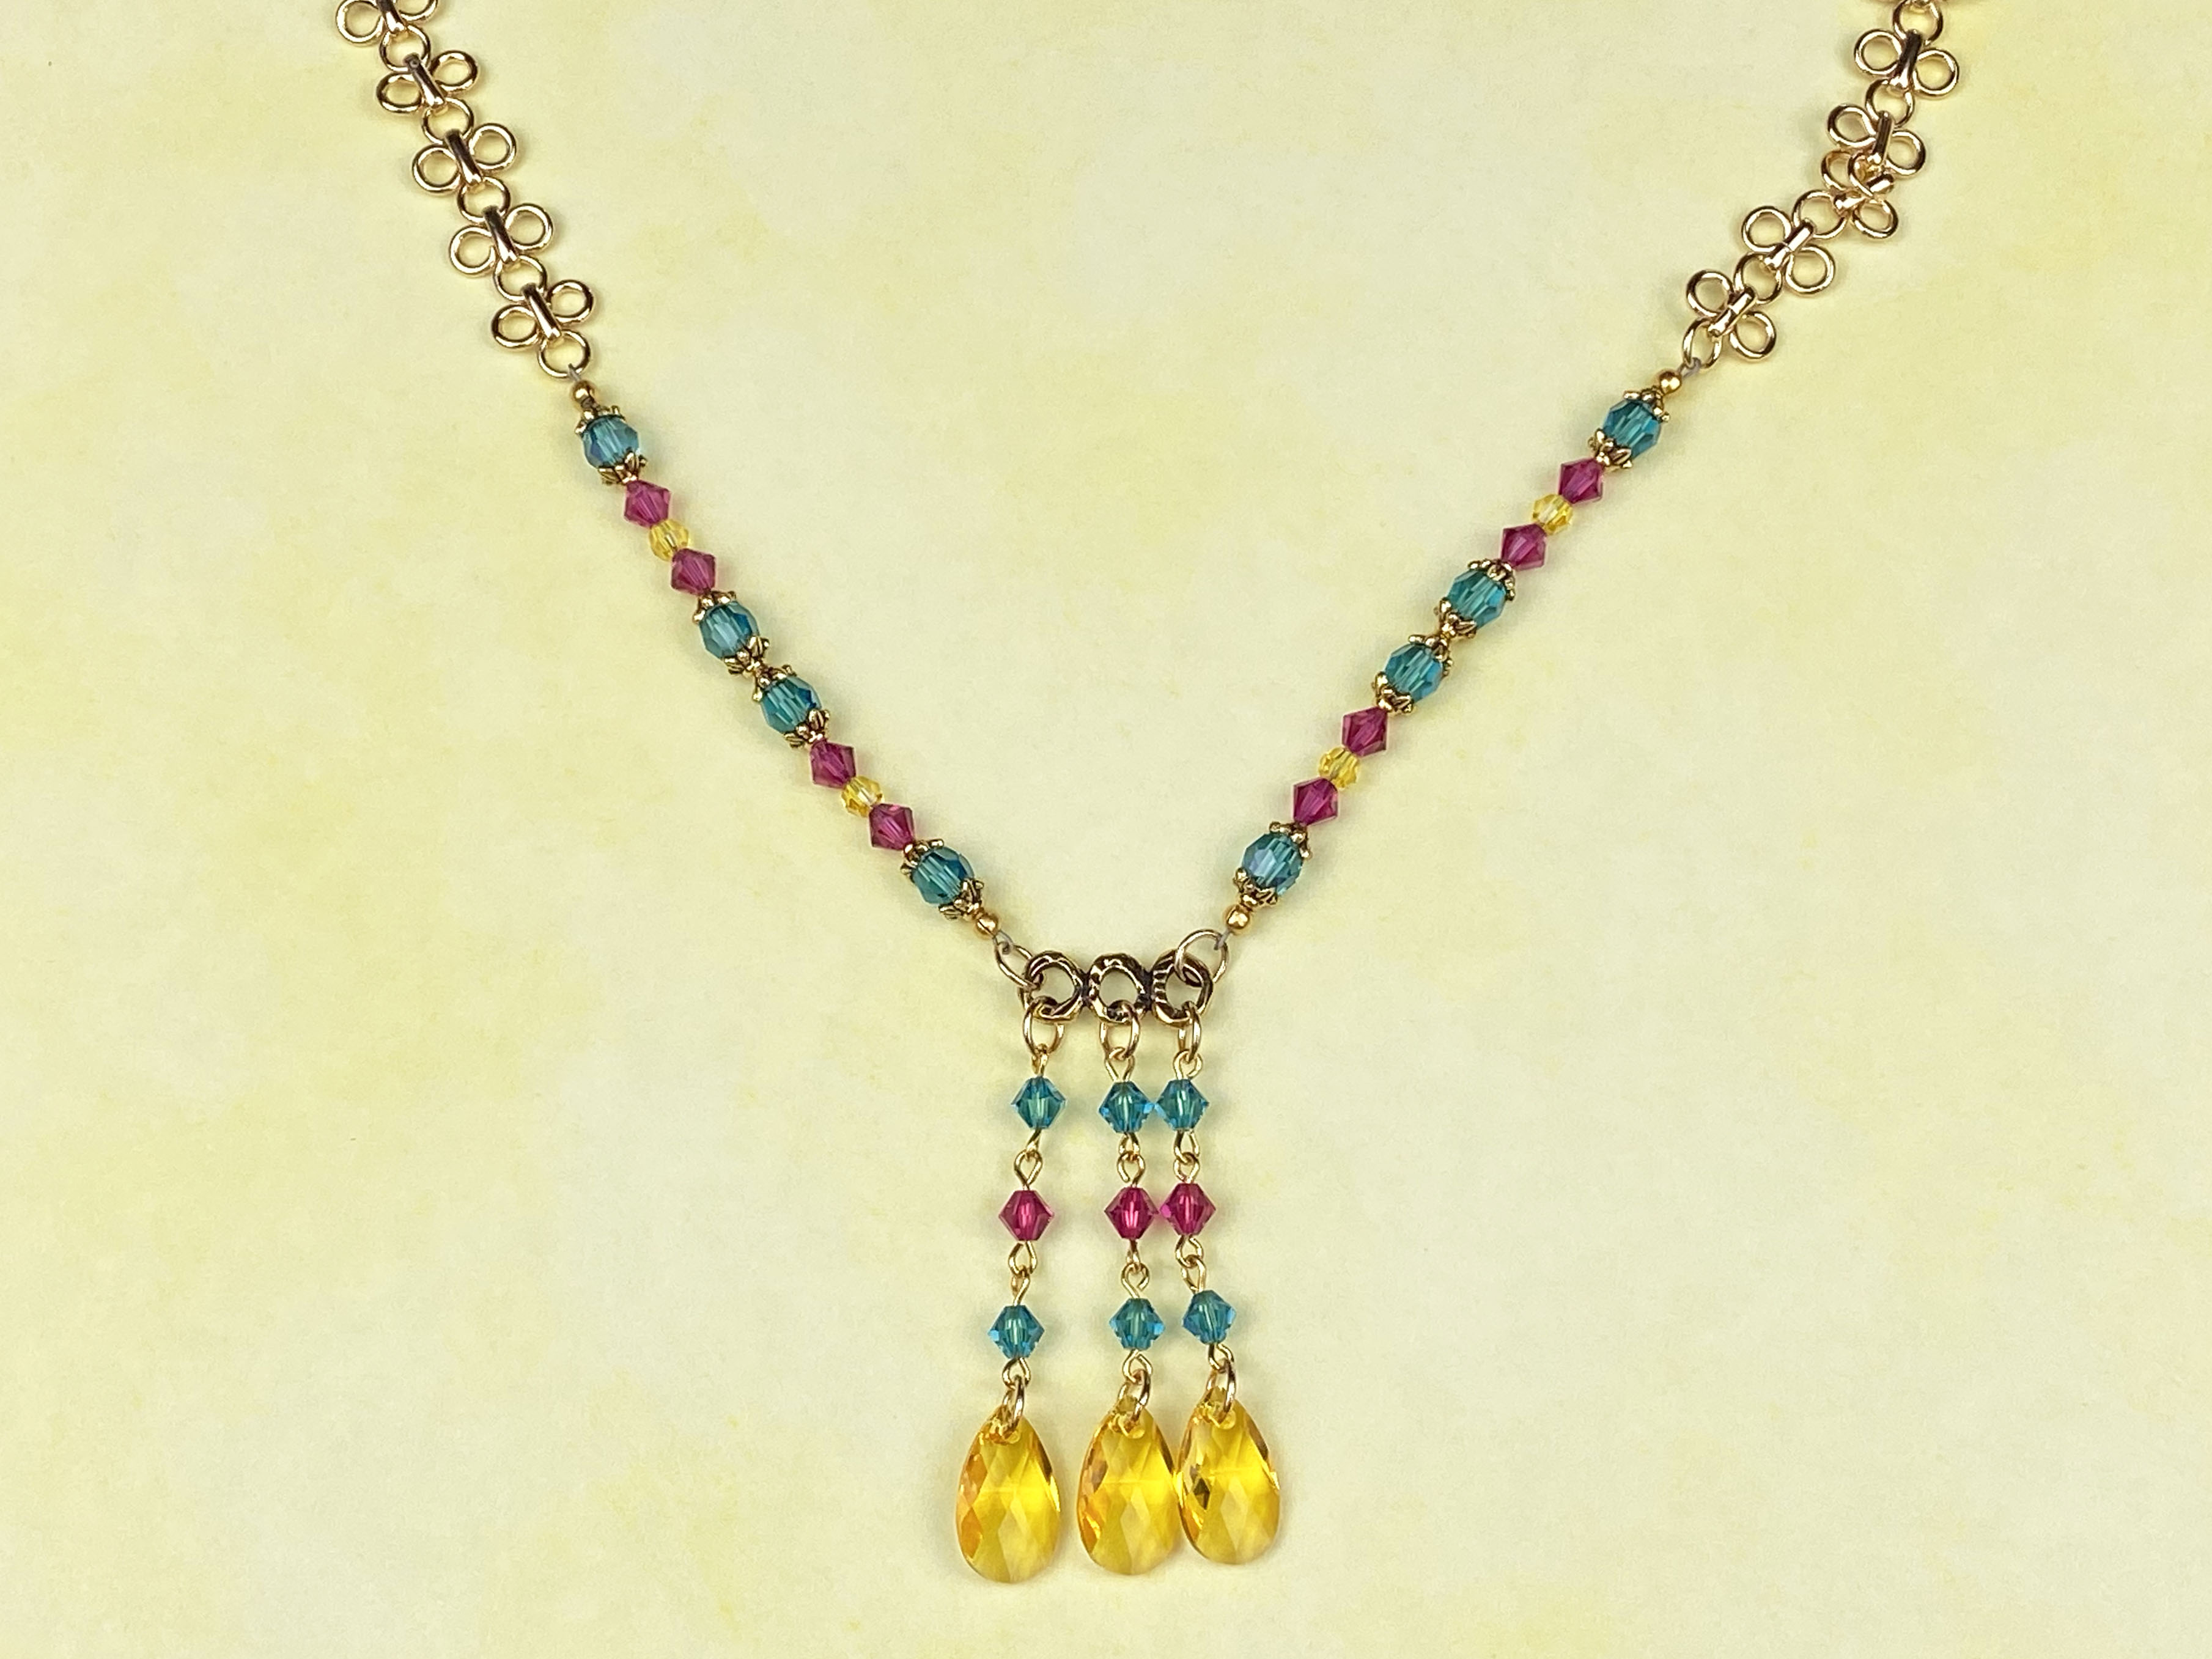 Festival of Colors Necklace with Swarovski crystals